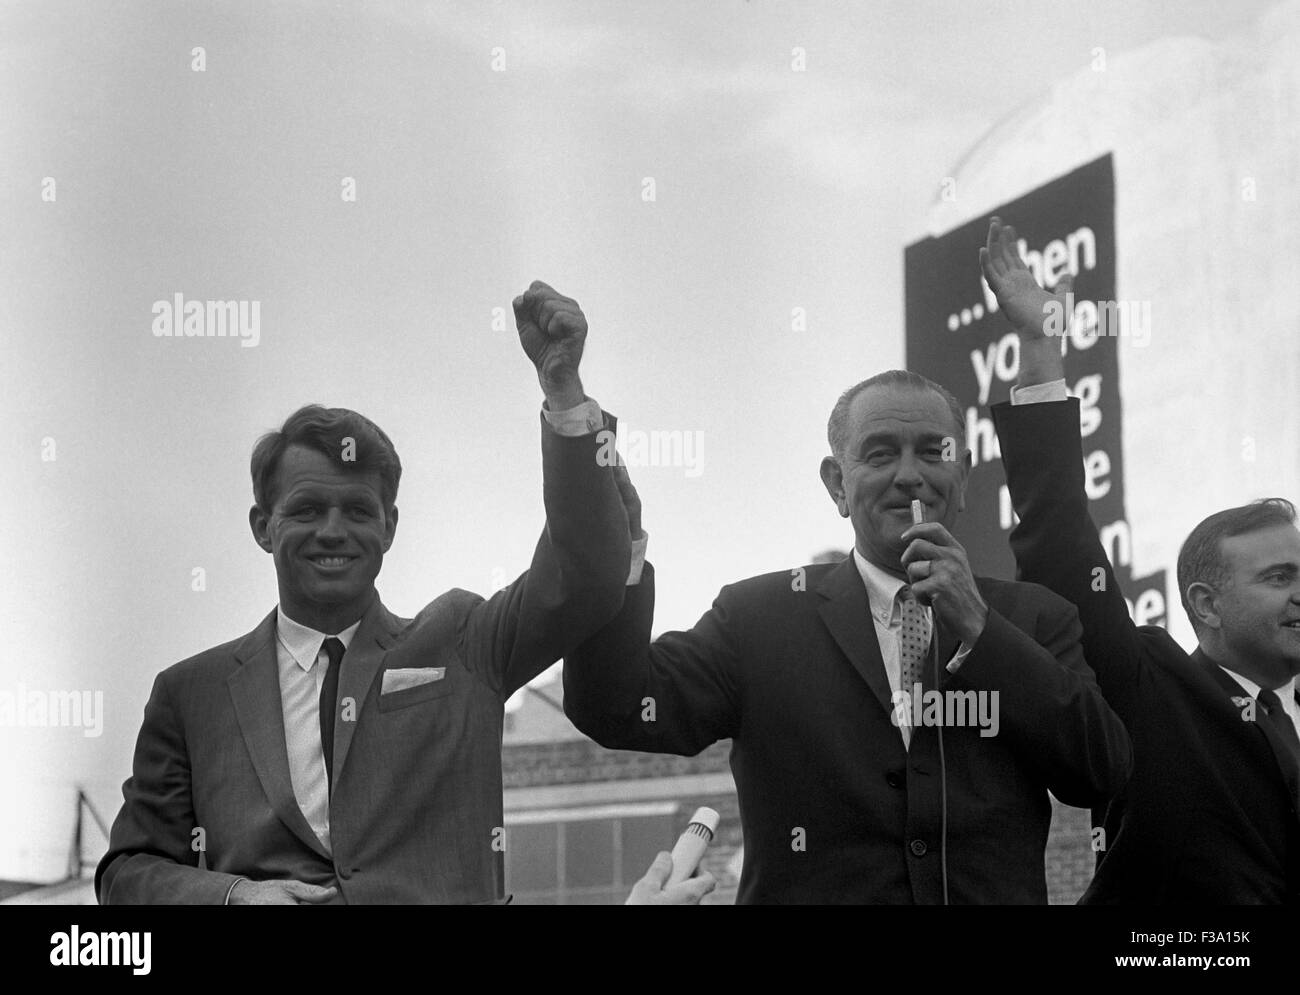 Digitally restored photo of President Lyndon Johnson campaigning with Robert Kennedy in 1964. - Stock Image